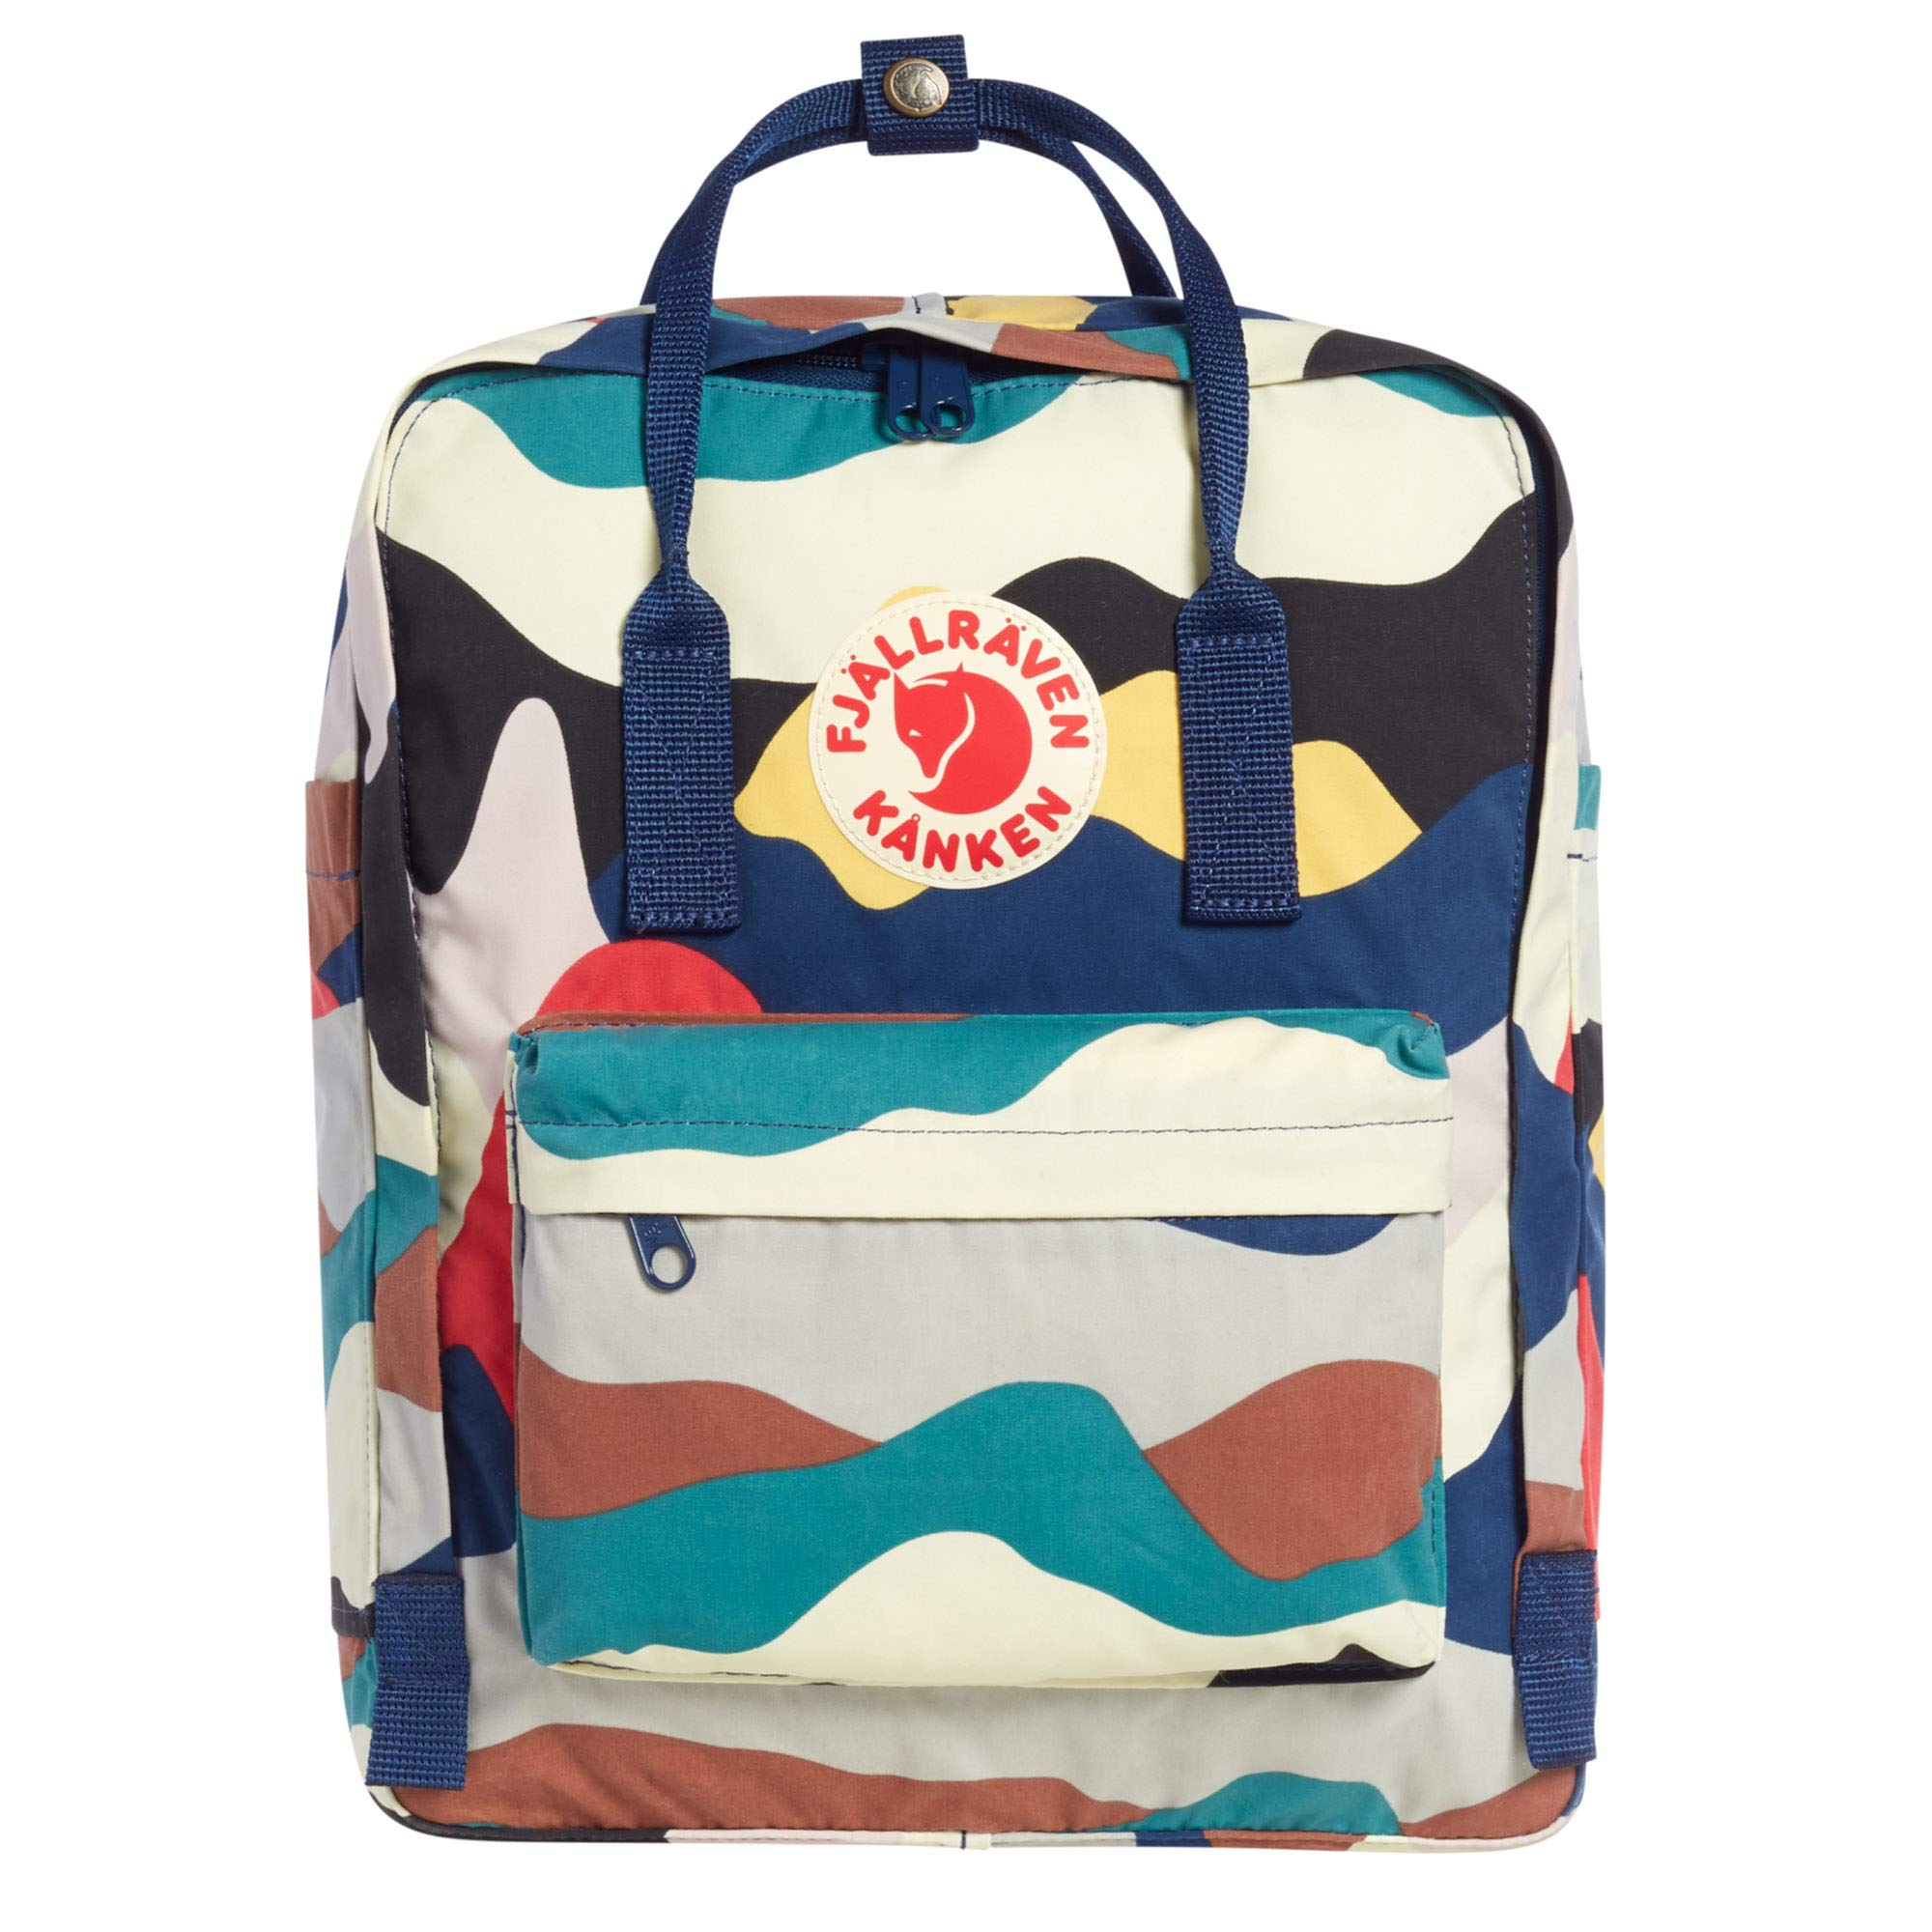 Fjallraven - Kanken Art Special Edition Backpack for Everyday, Summer Landscape by Fjallraven